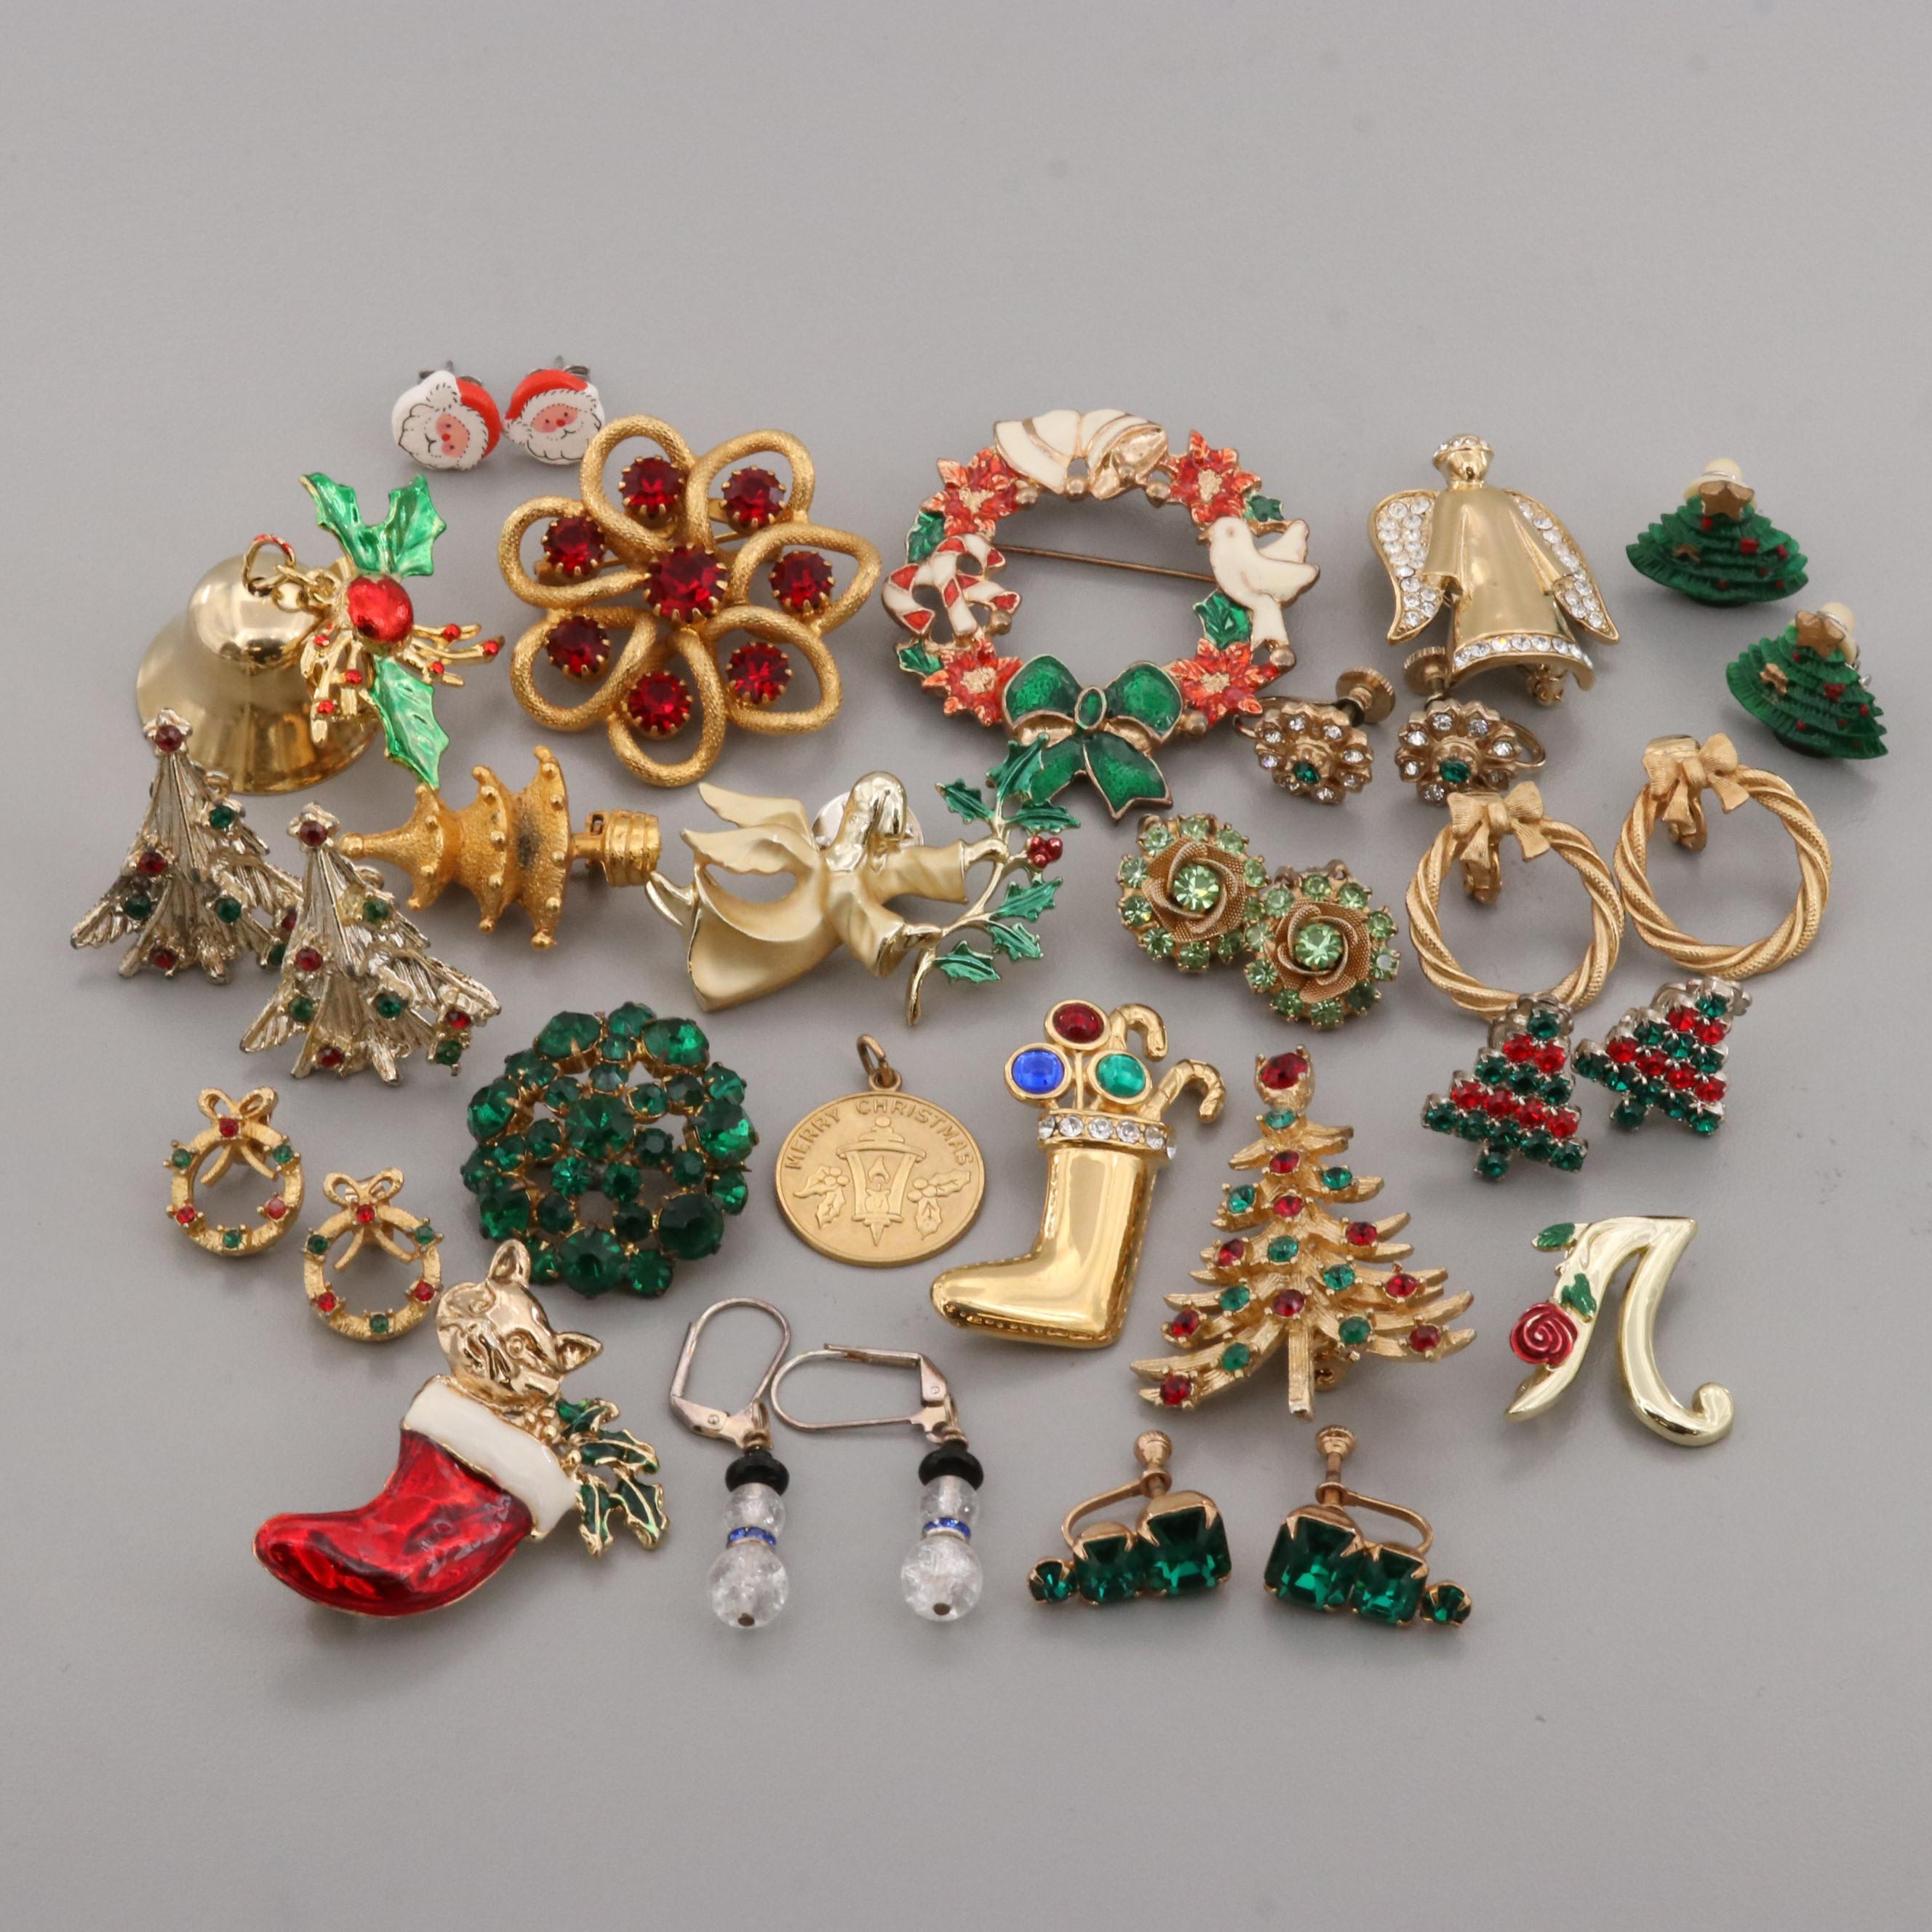 Assortment of Gold Tone Glass, Foilback Glass, and Enamel Christmas Jewelry